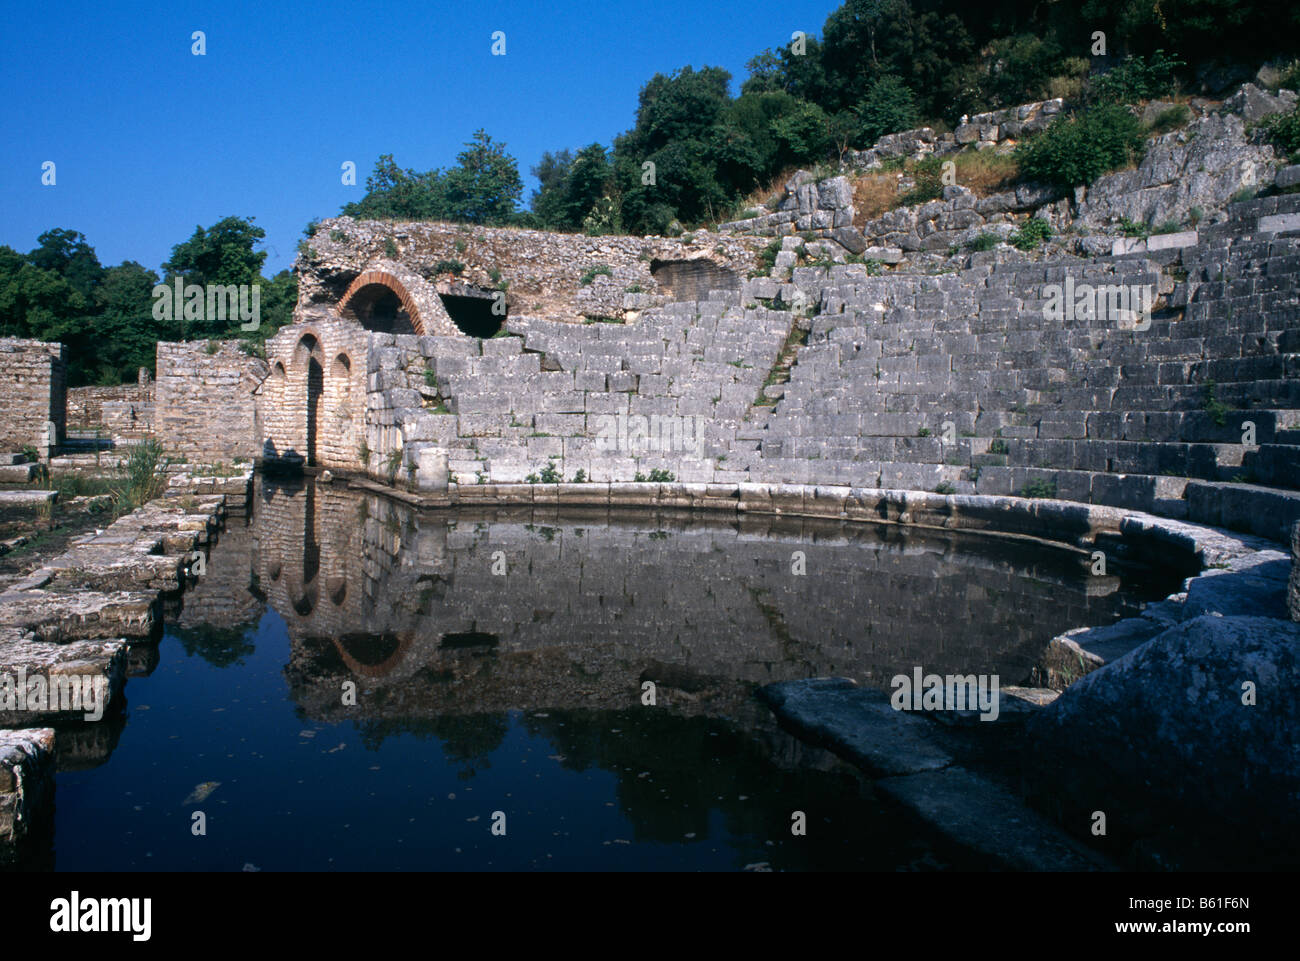 The Roman amphitheatre at Butrint in southern Albania 1994 - Stock Image